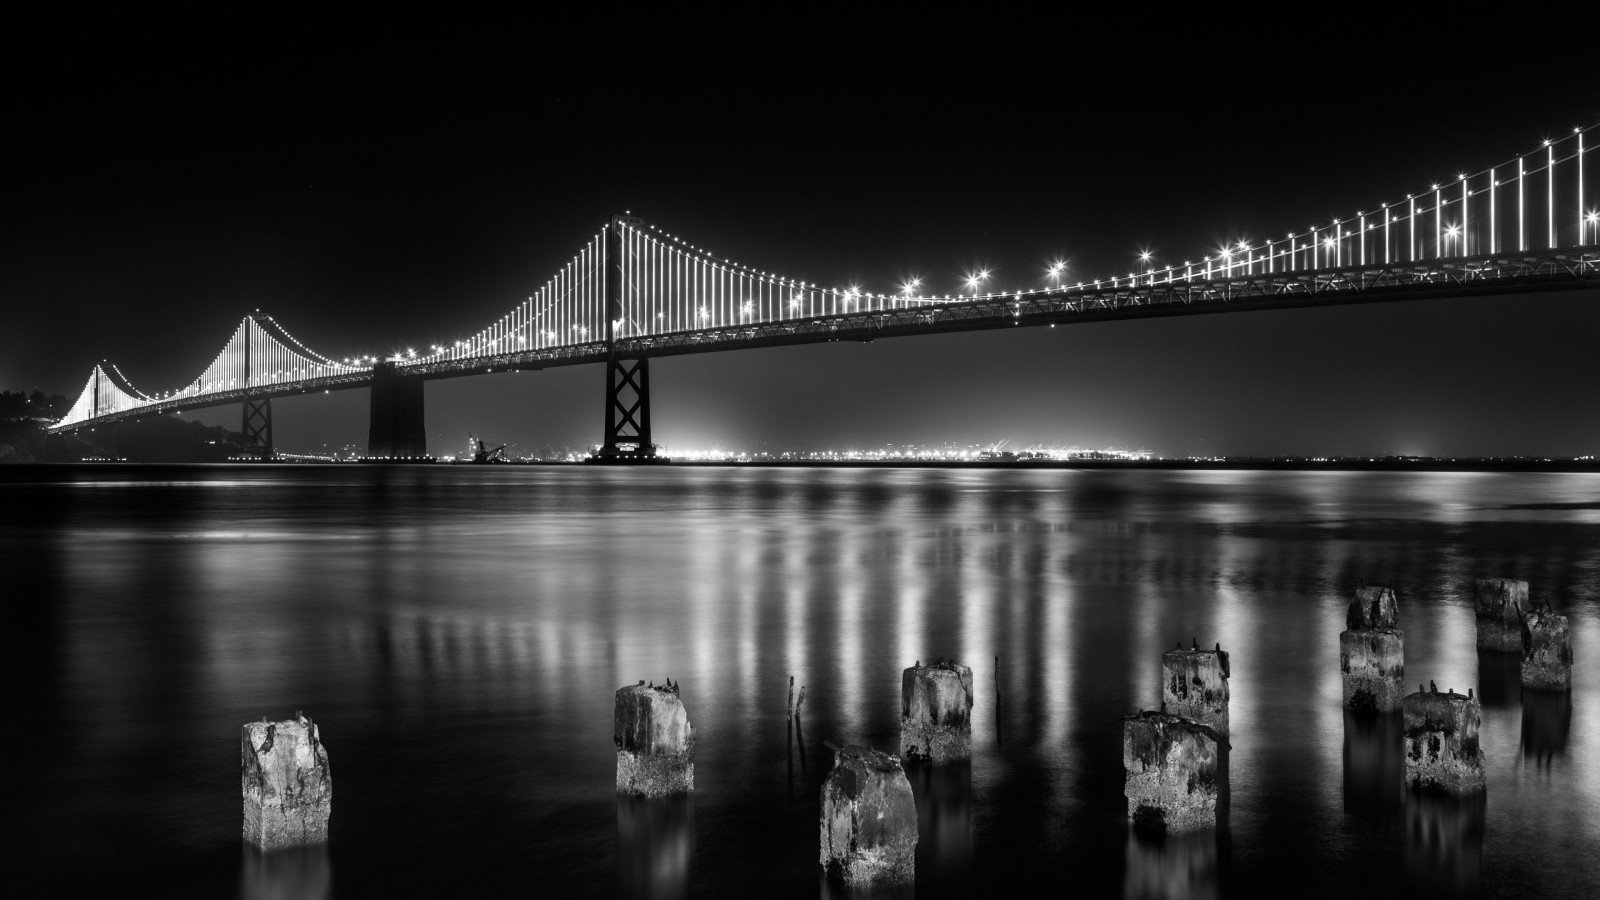 Bay bridge from San Francisco | 1600x900 wallpaper